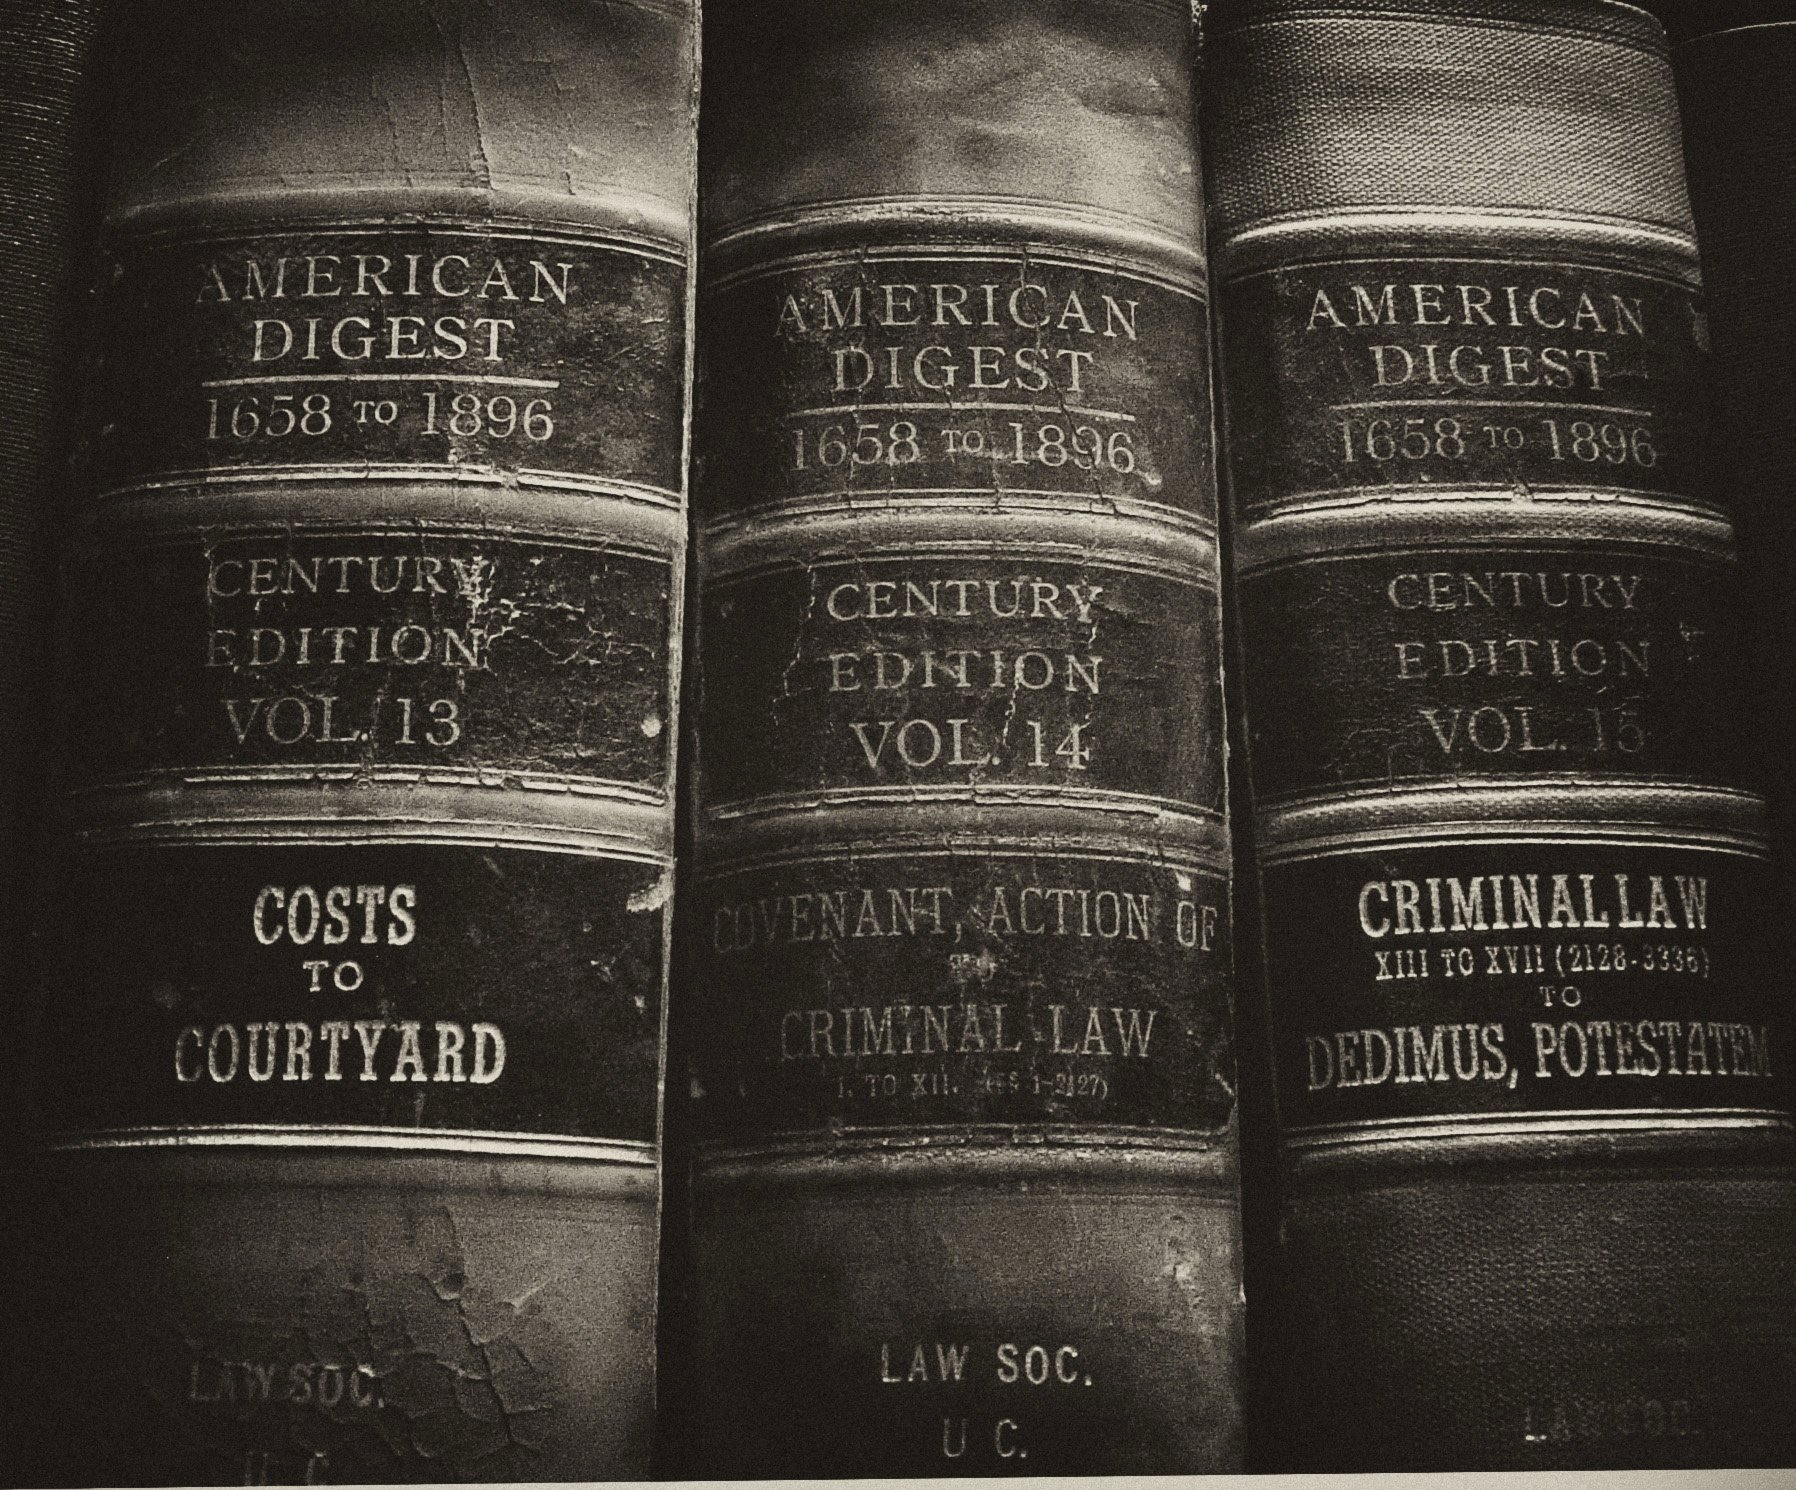 American Law Digest Books on a shelf in a library